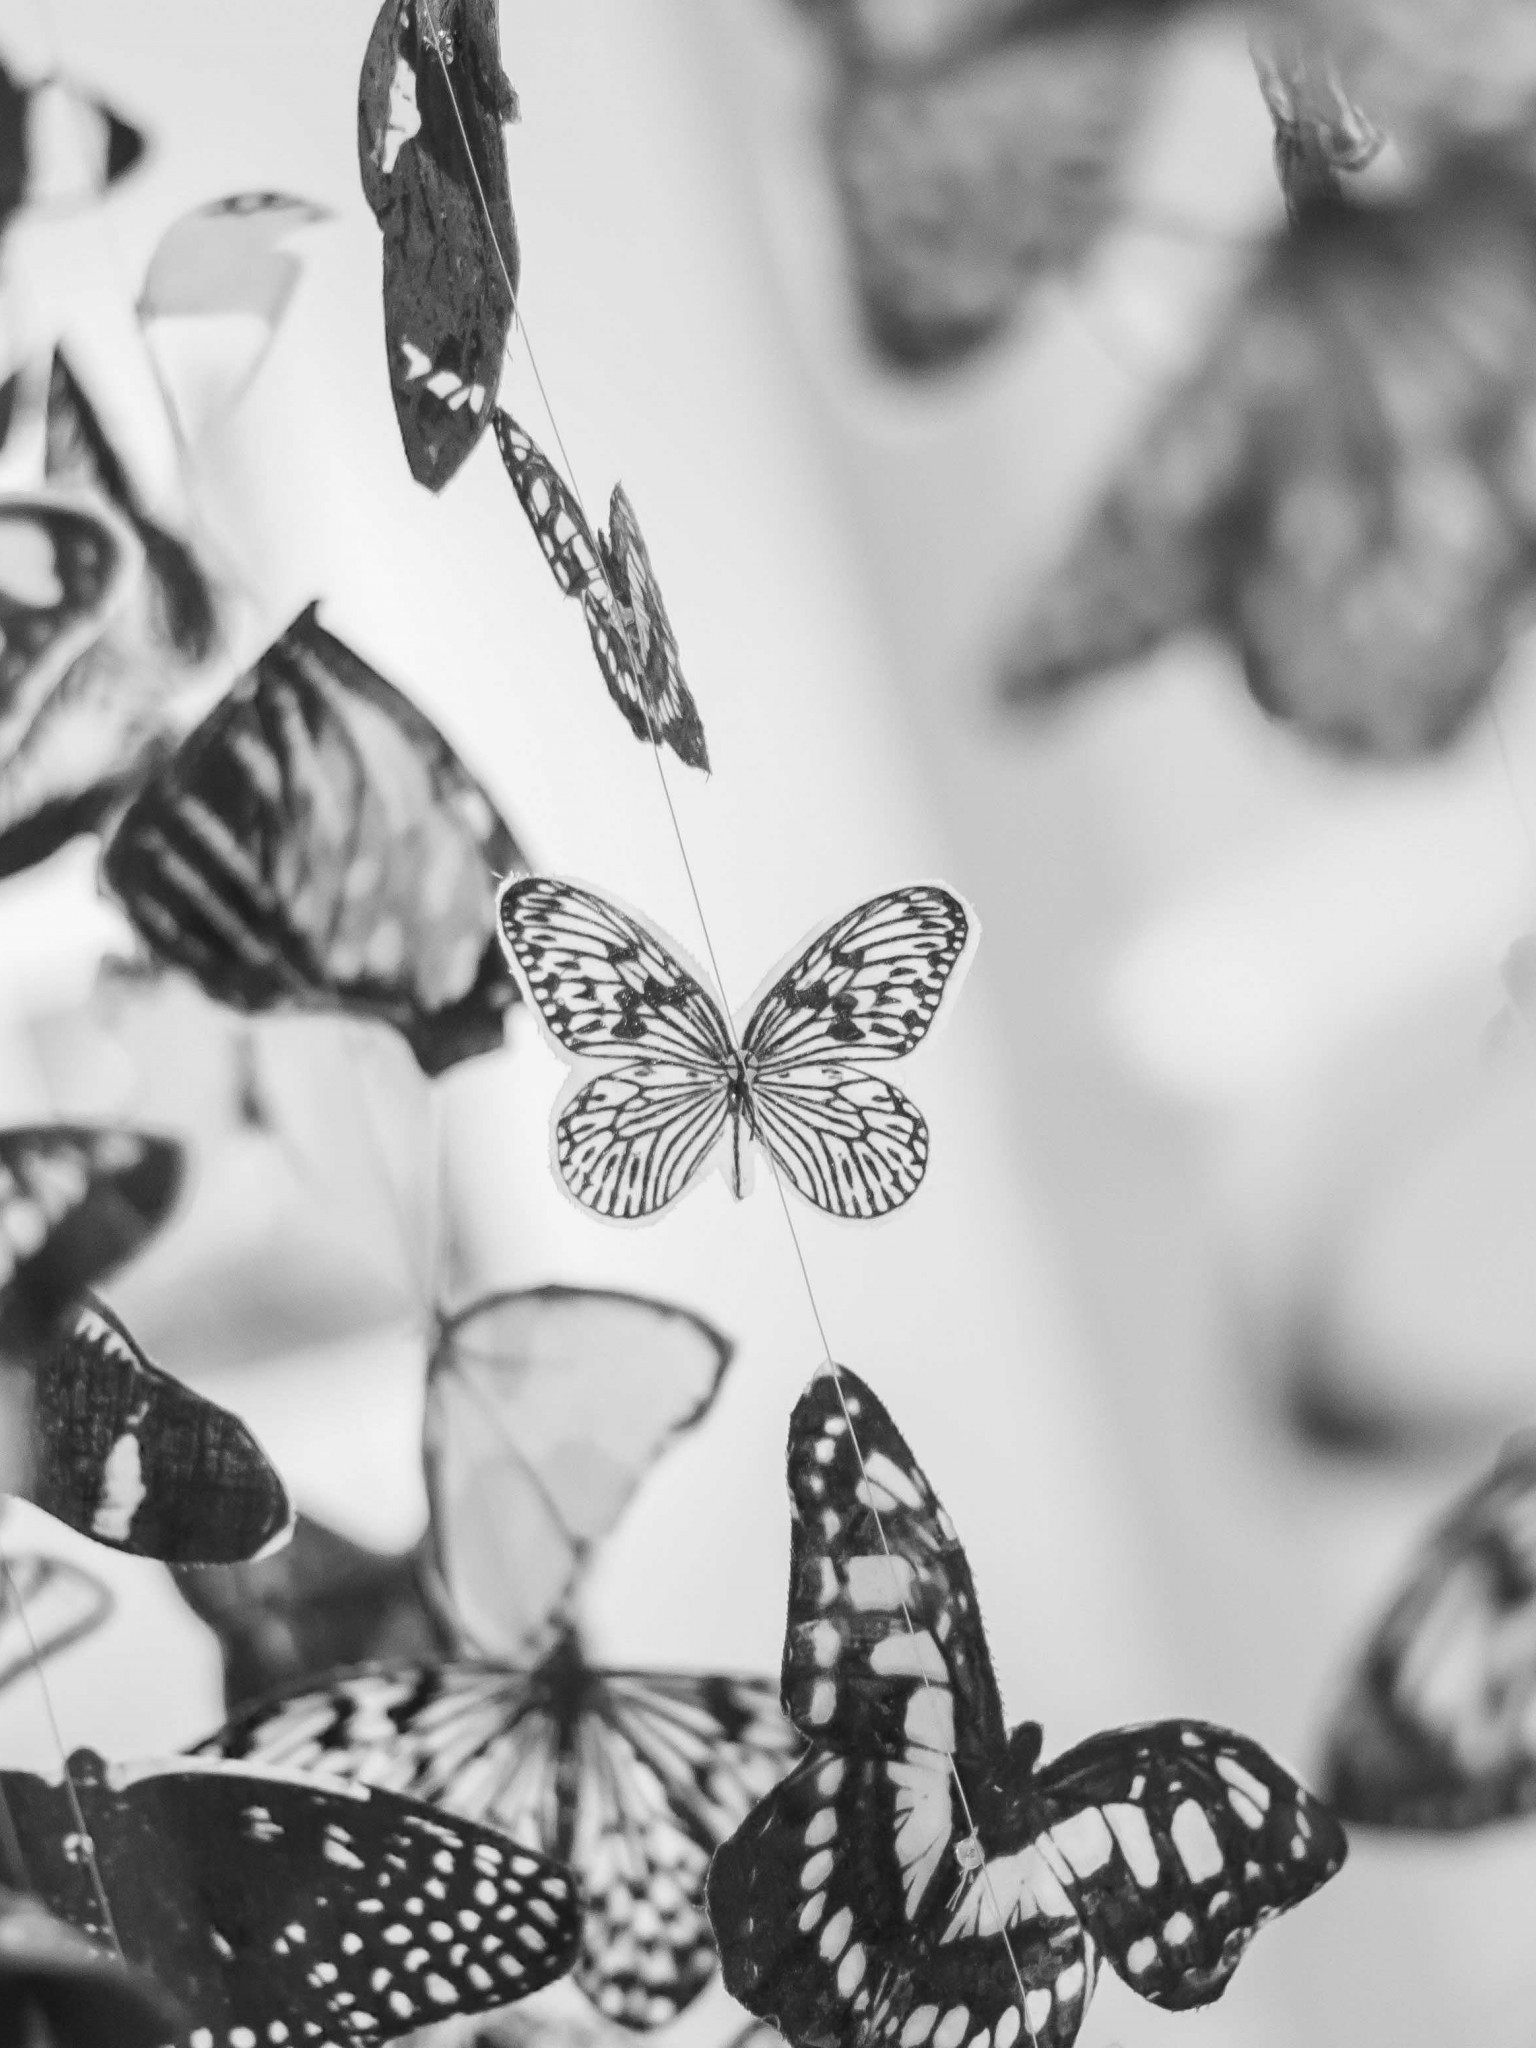 Colorful Beautiful Black And White Butterfly Wallpaper For Desktop Mobiles